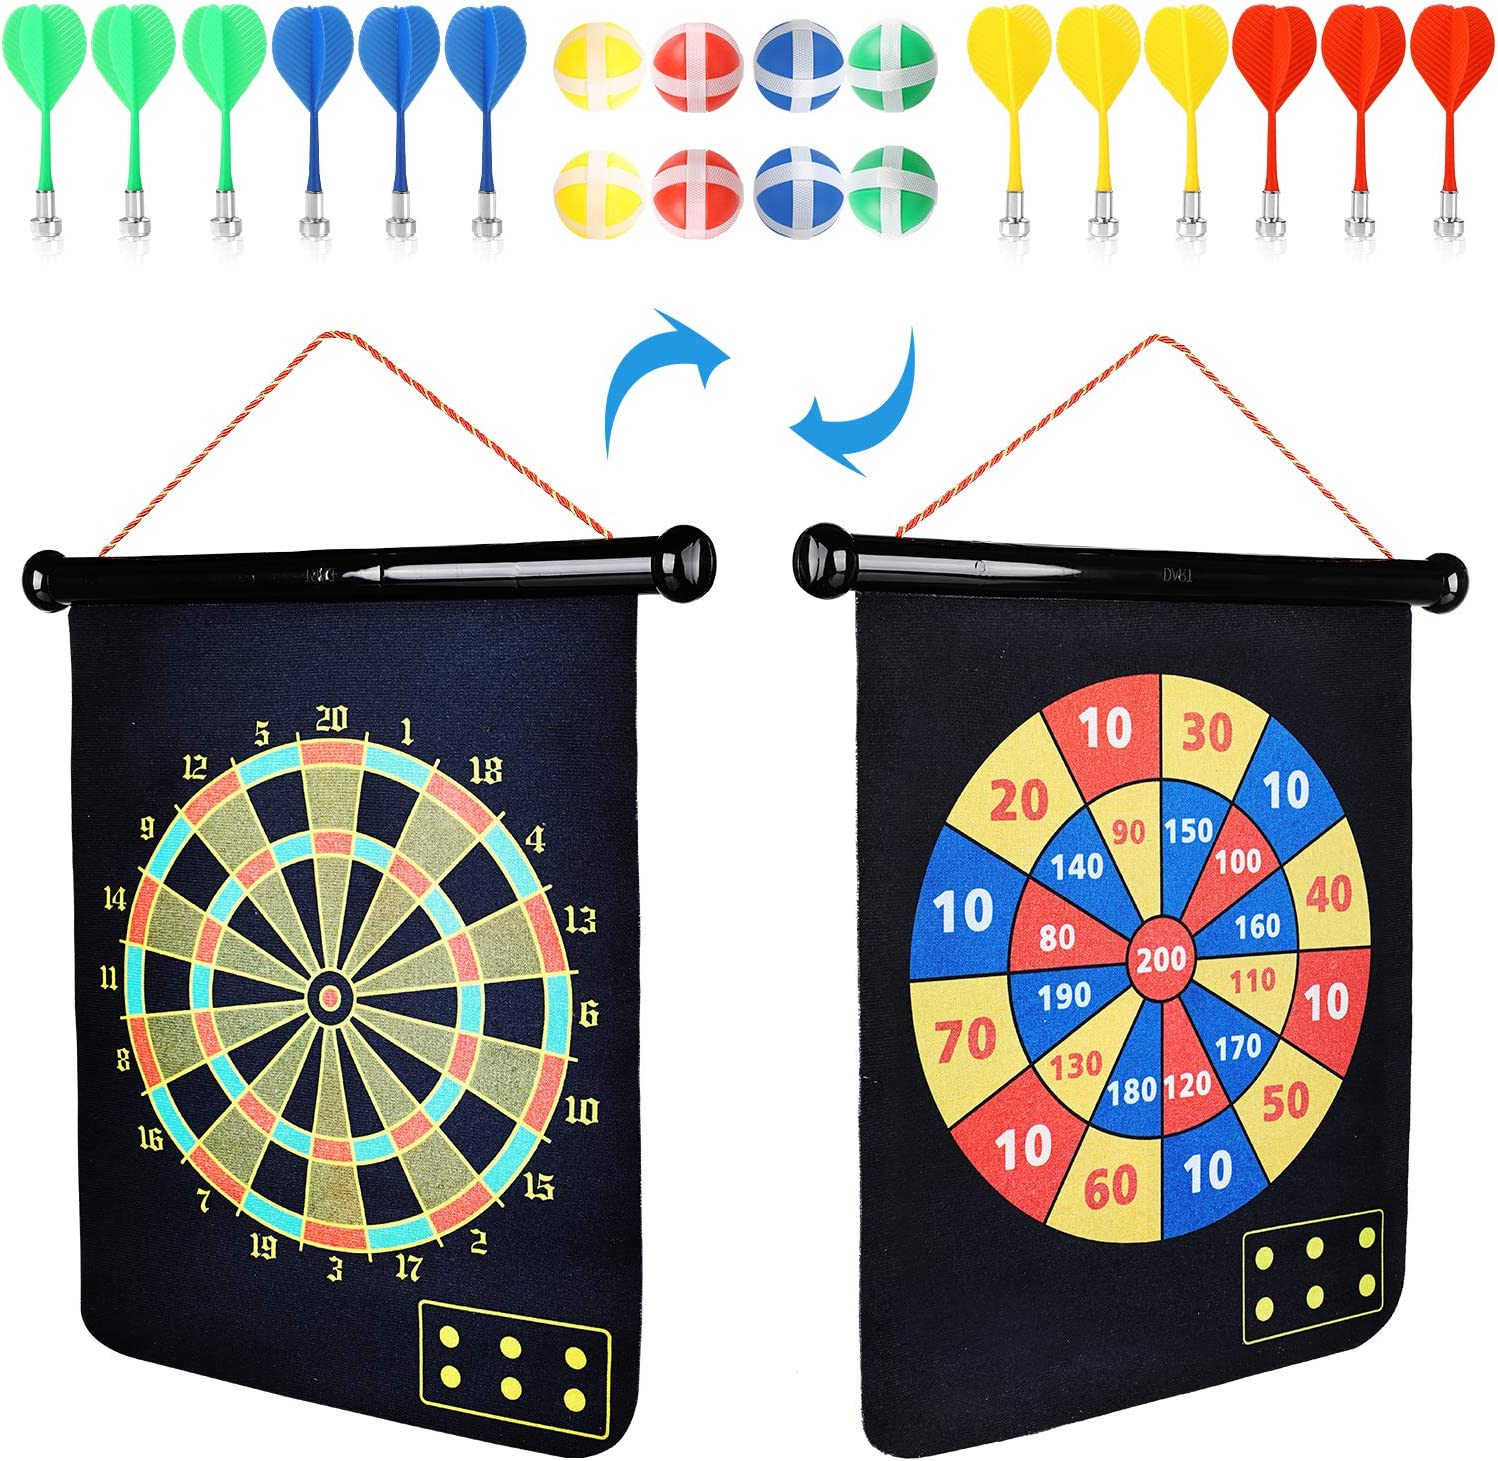 Magnetic Dart Board for Kids Adults with 12 Magnetic Darts and 8 Sticky Balls Reversible Rollup Kids Safe Dart Board Set for Boys Girls Easy Hanging Classic Dart Board Toys Indoor Outdoors Party Games